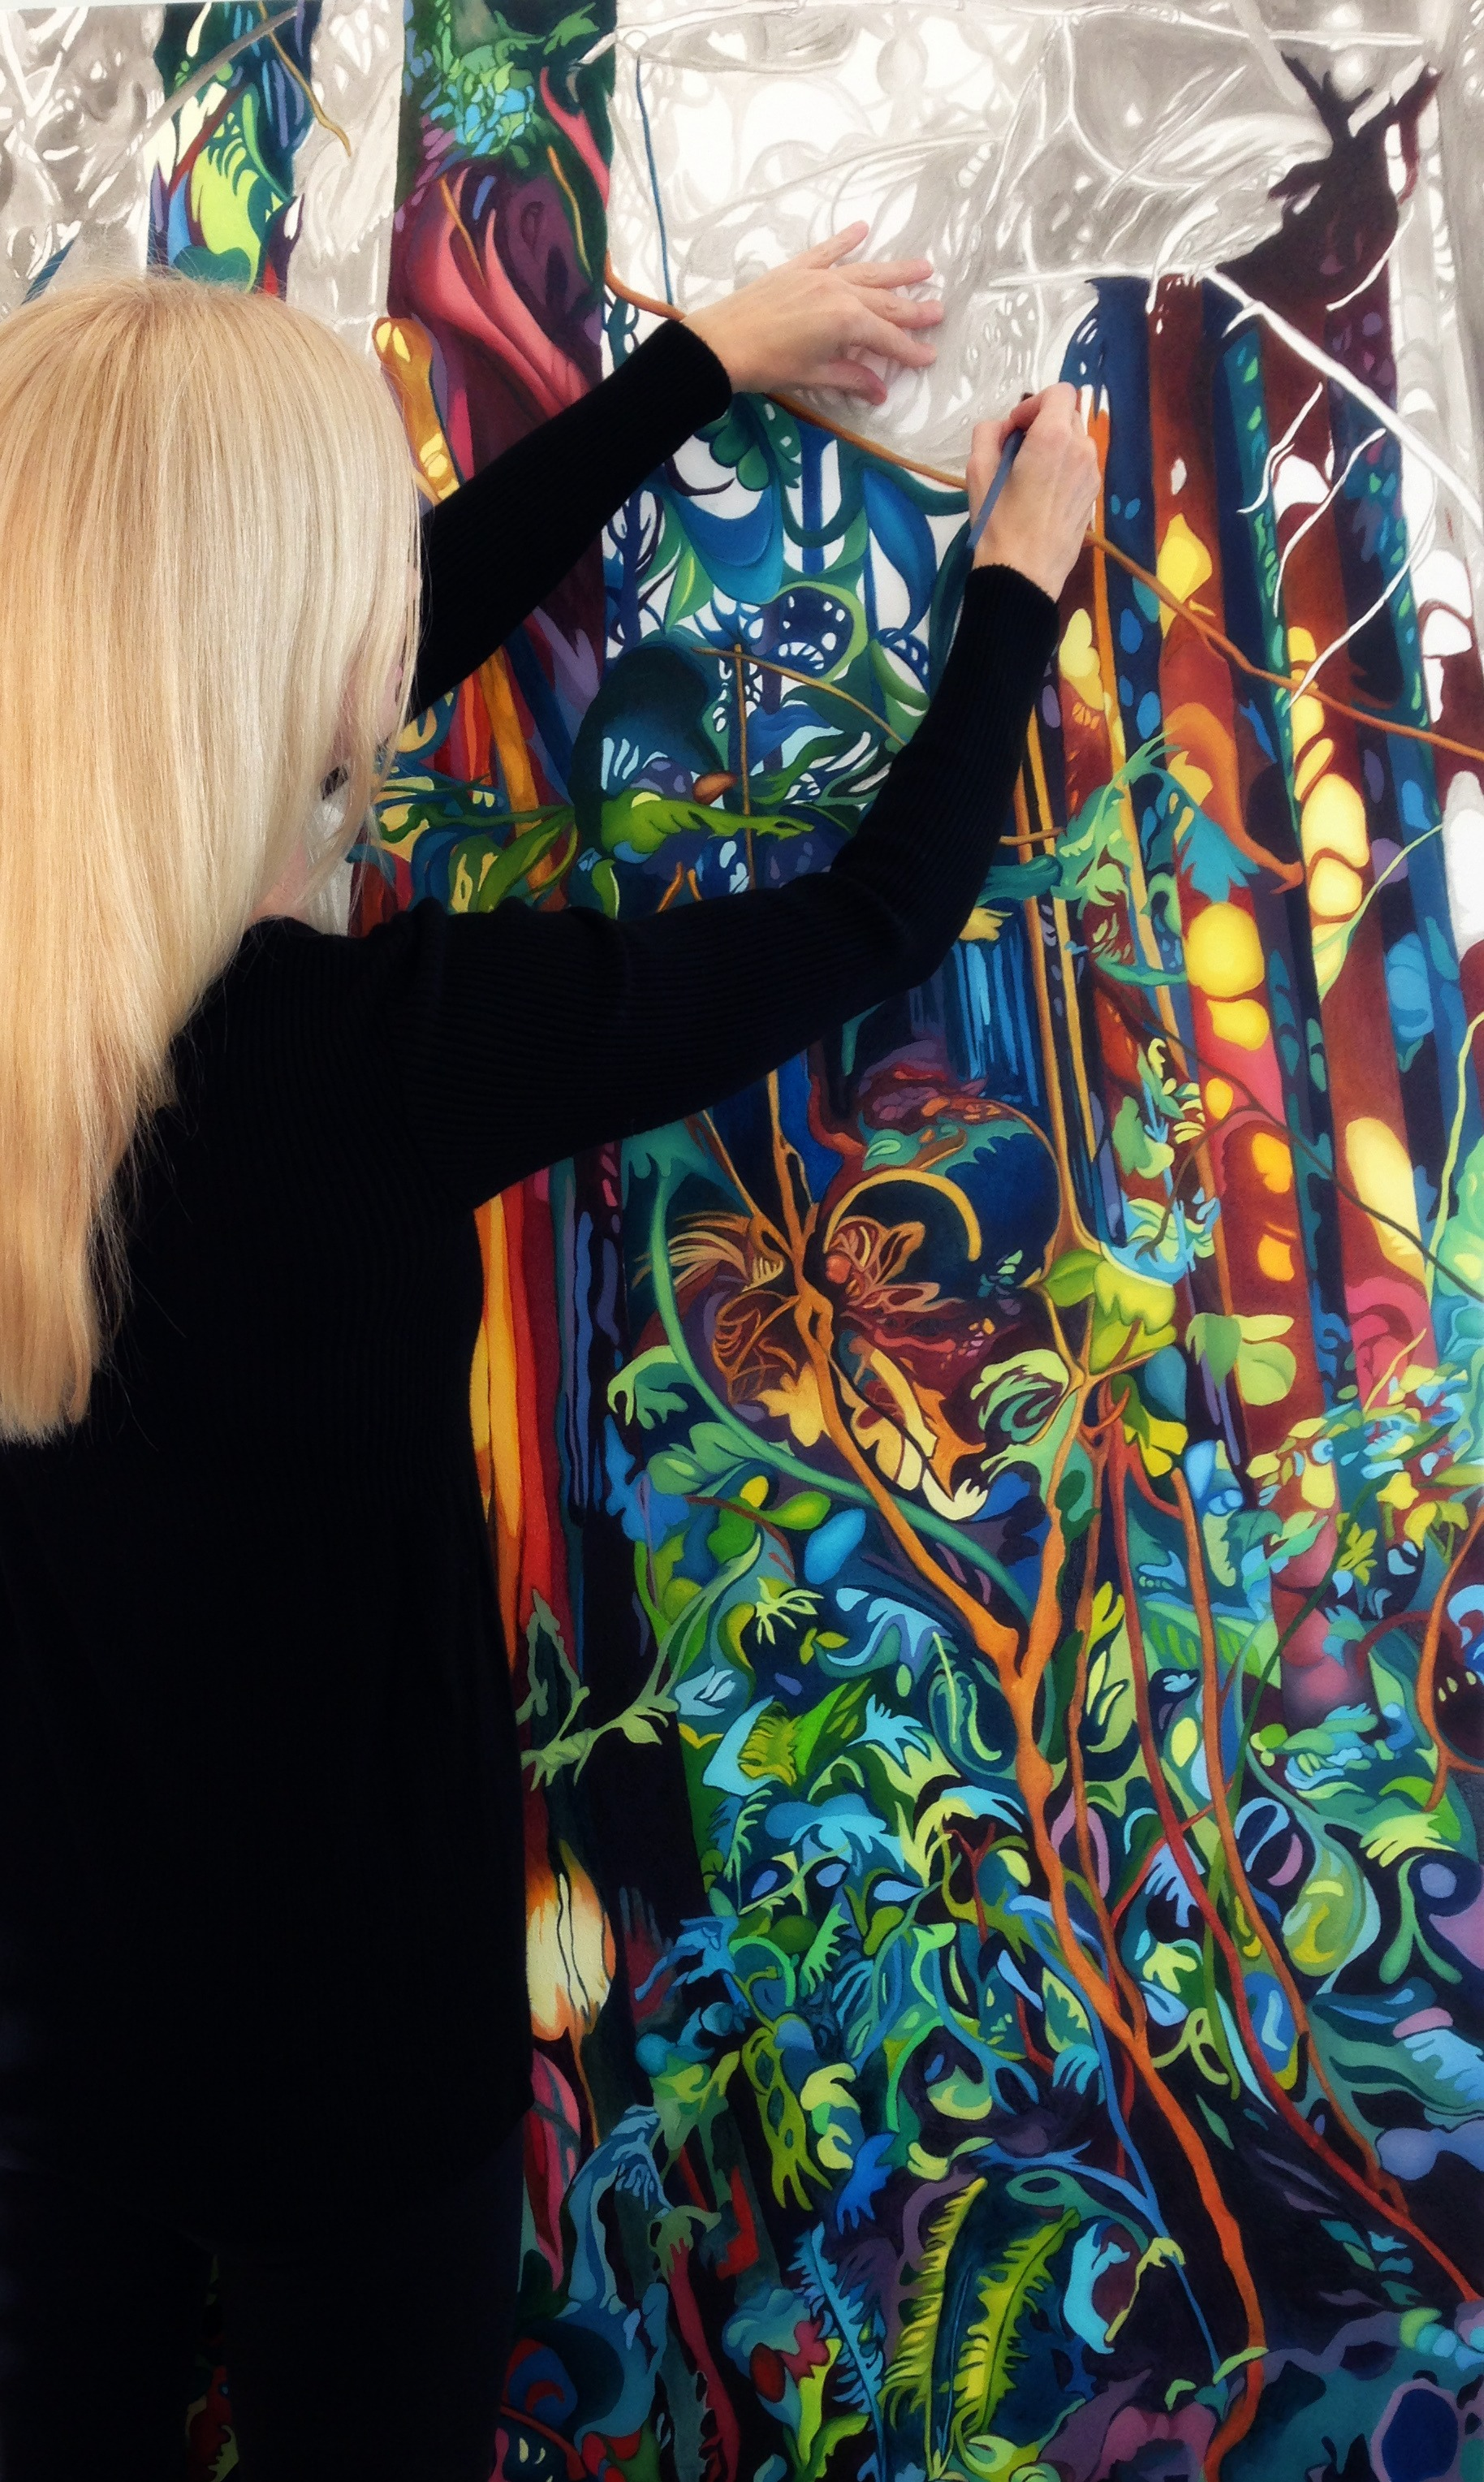 Painting enchanted forest, adding colour layers